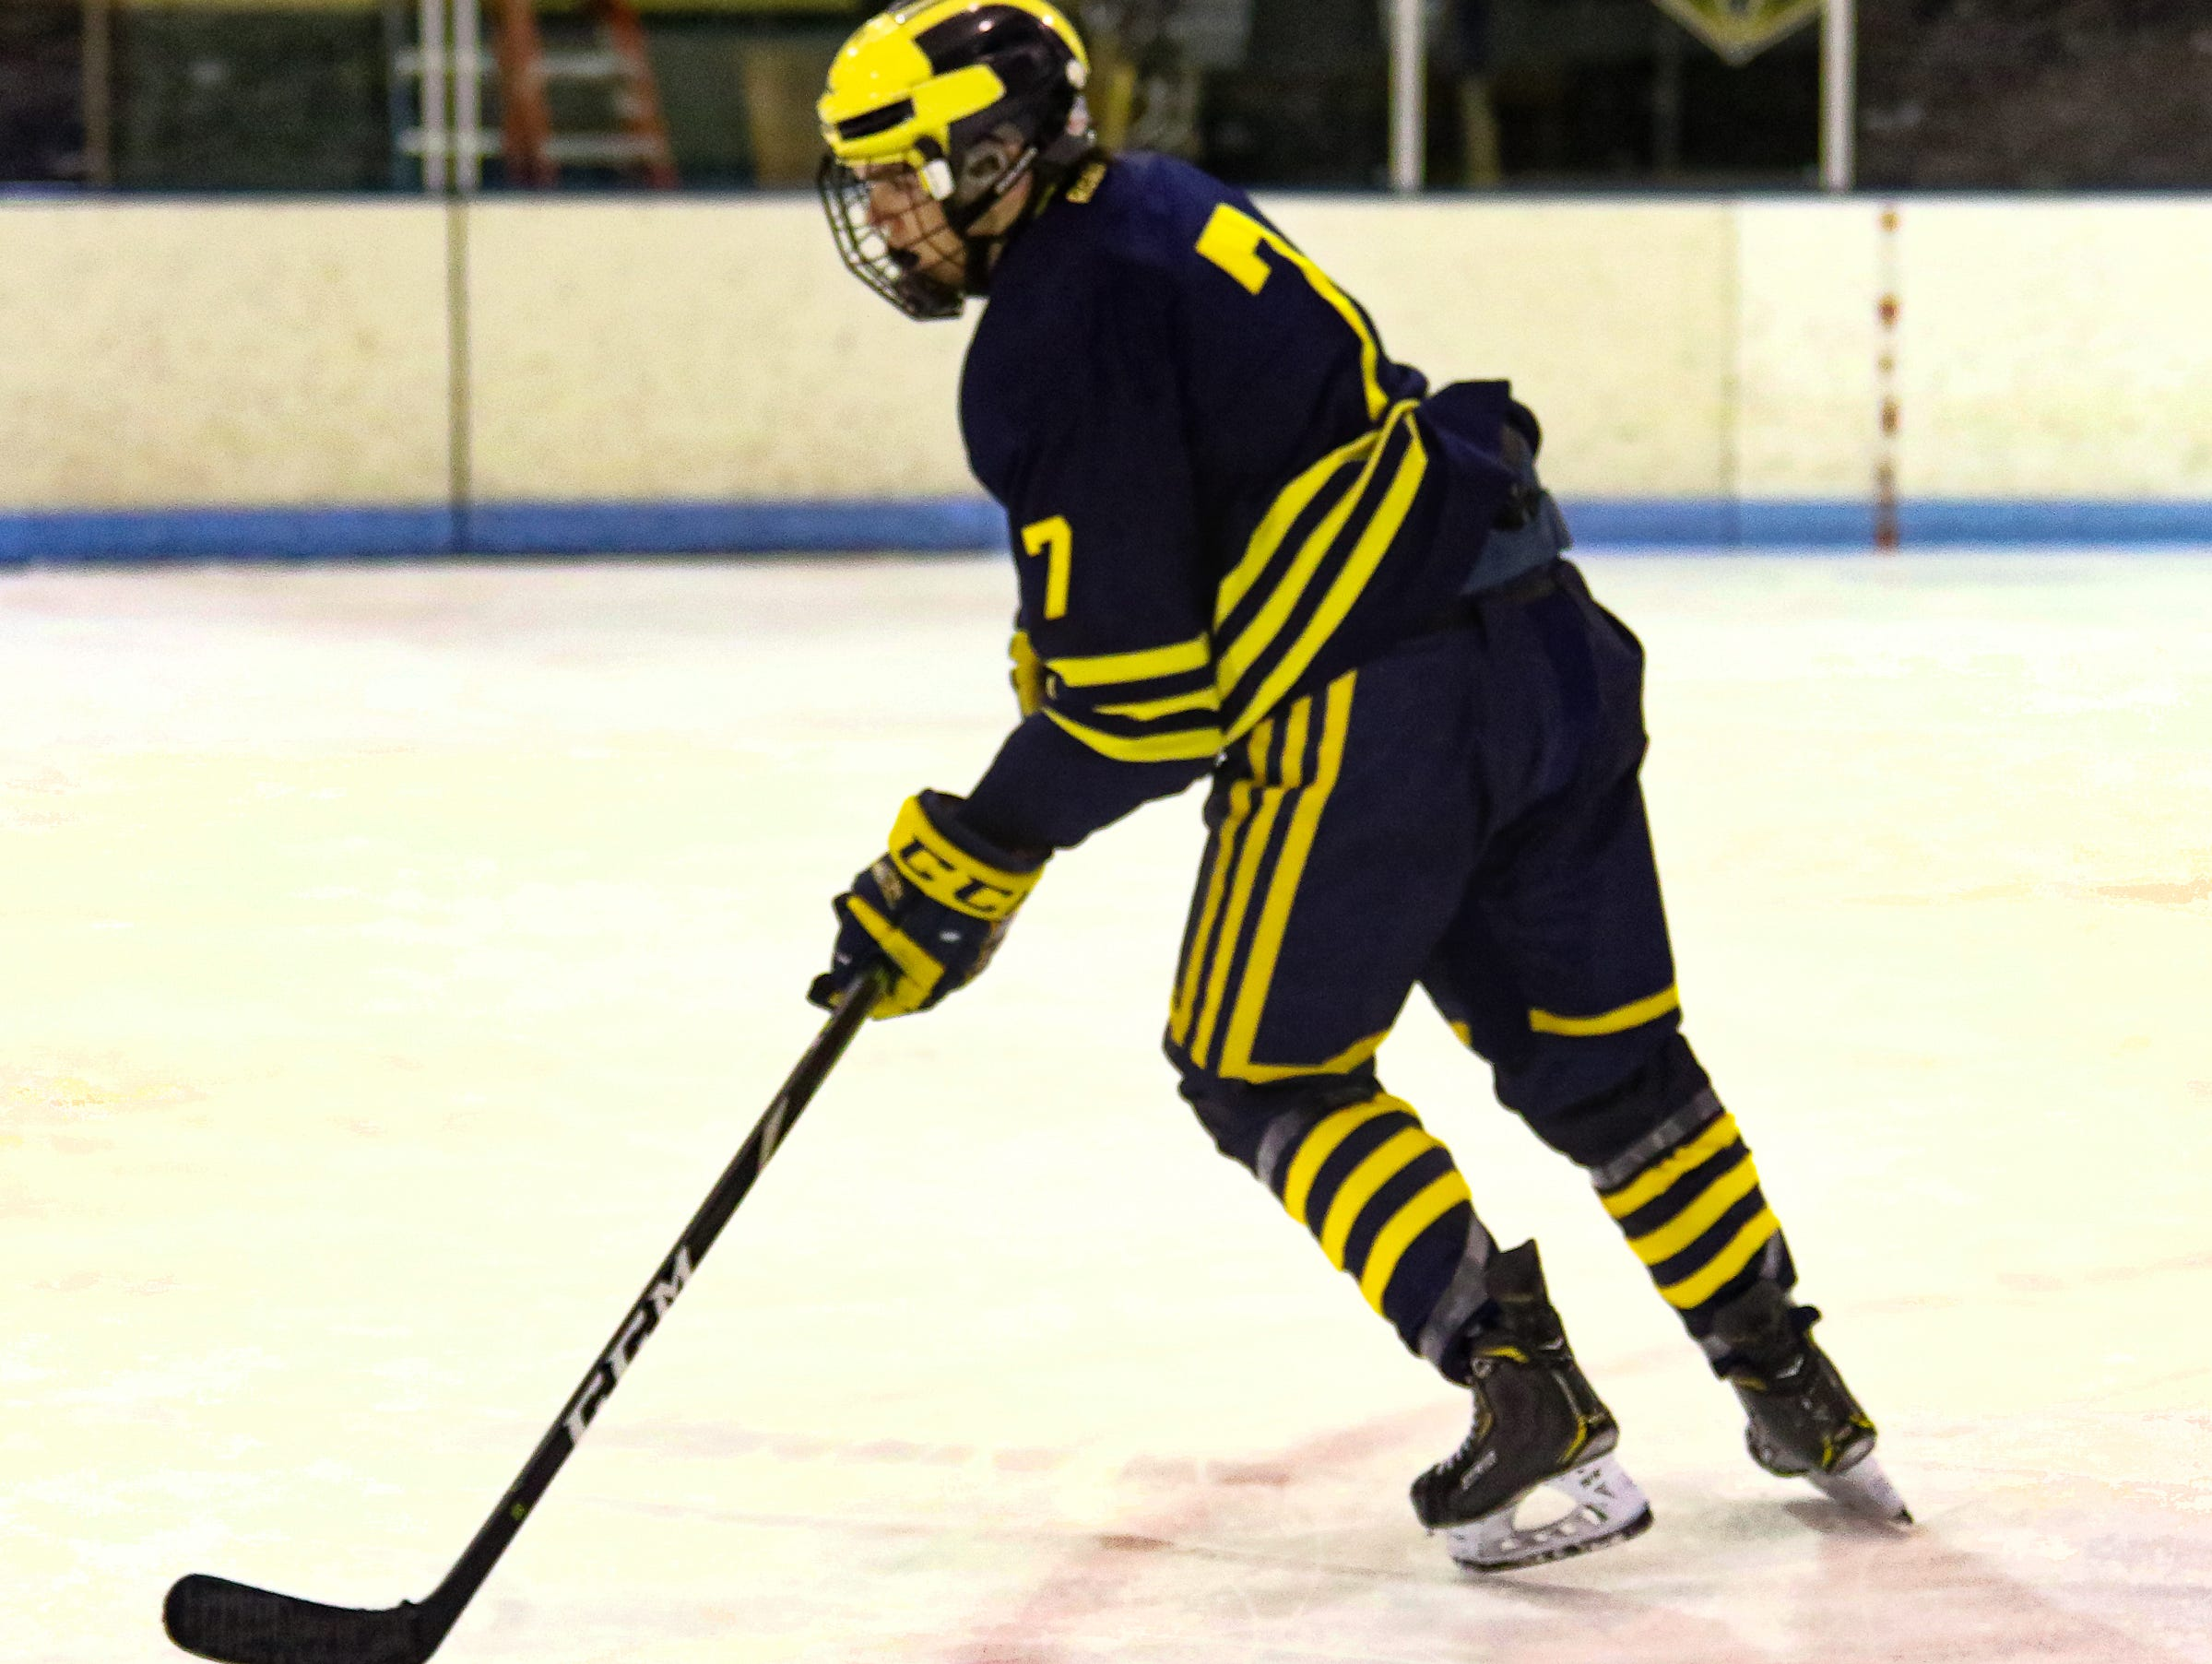 Defenseman Grant Briggs scored a goal for Hartland in a 7-1 victory over Howell on Tuesday, Jan. 15, 2019.